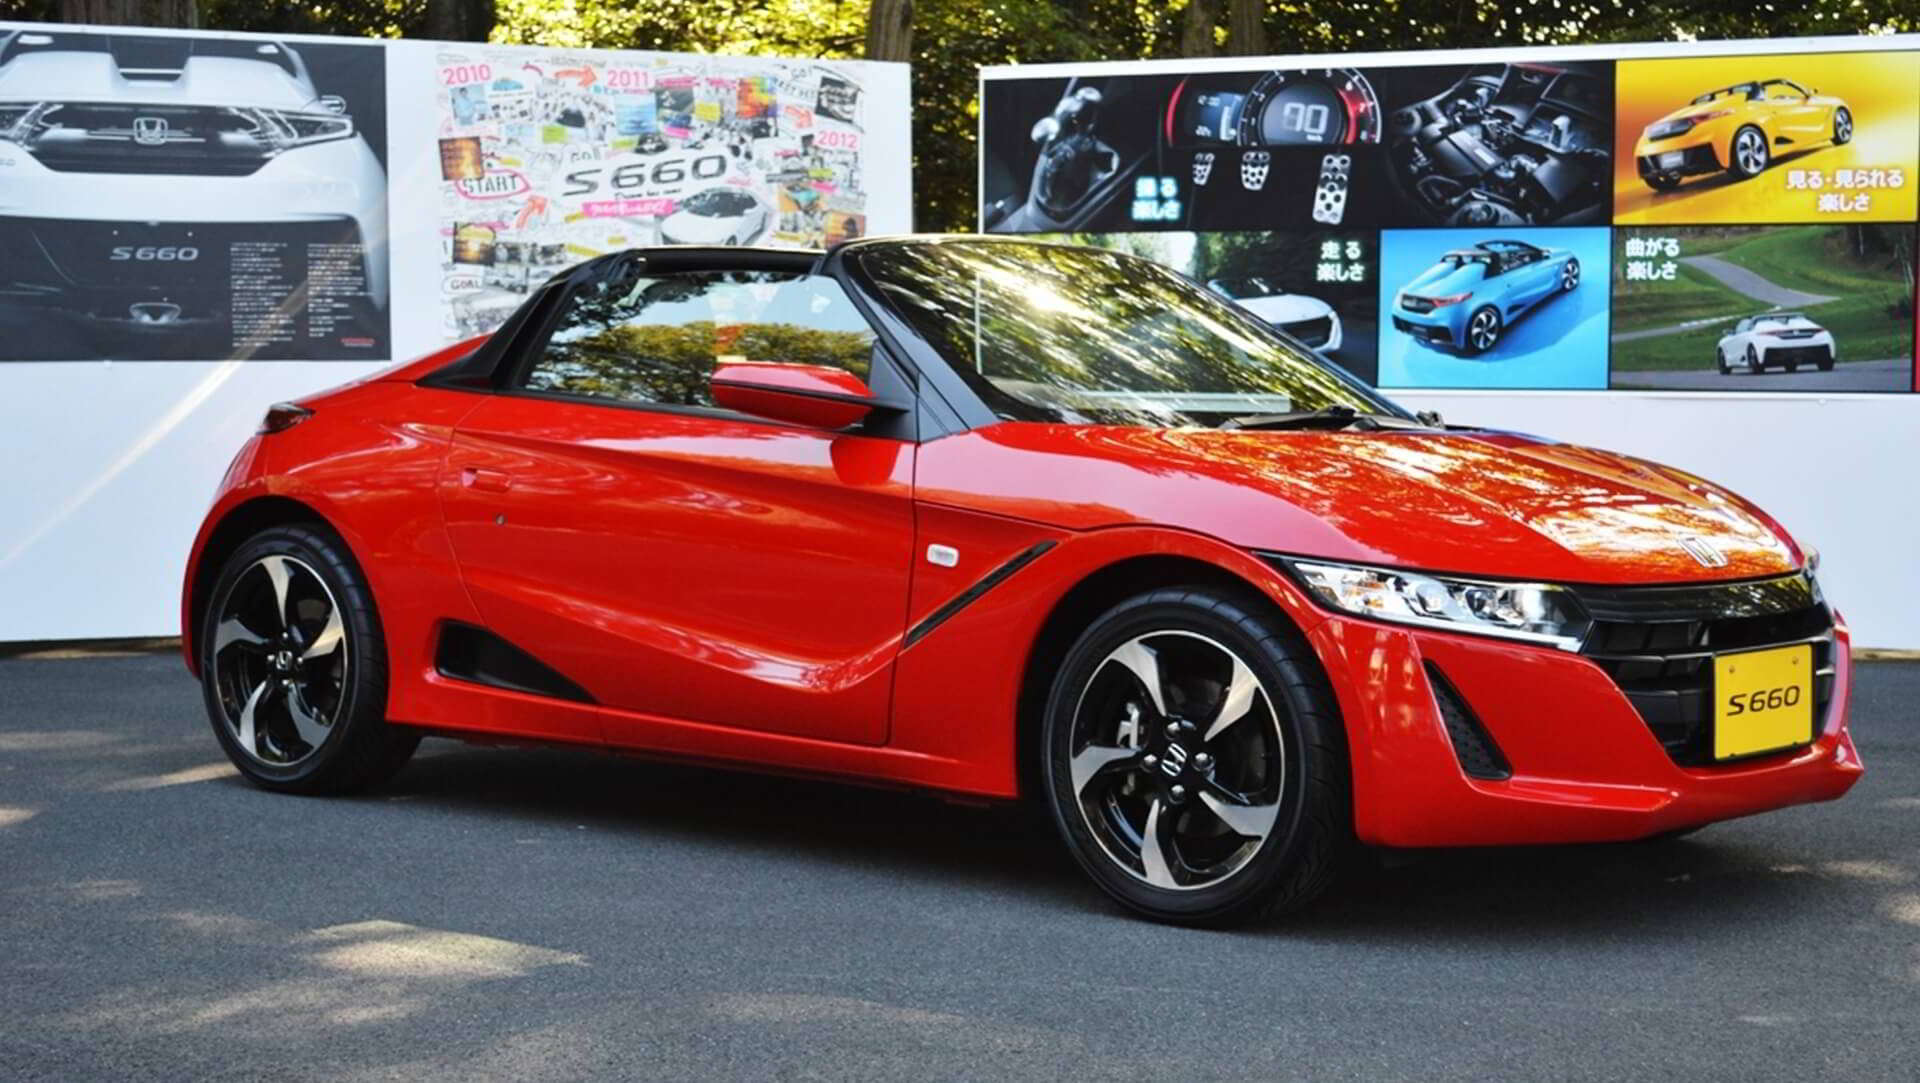 87 New 2020 Honda S2000 Release Date and Concept